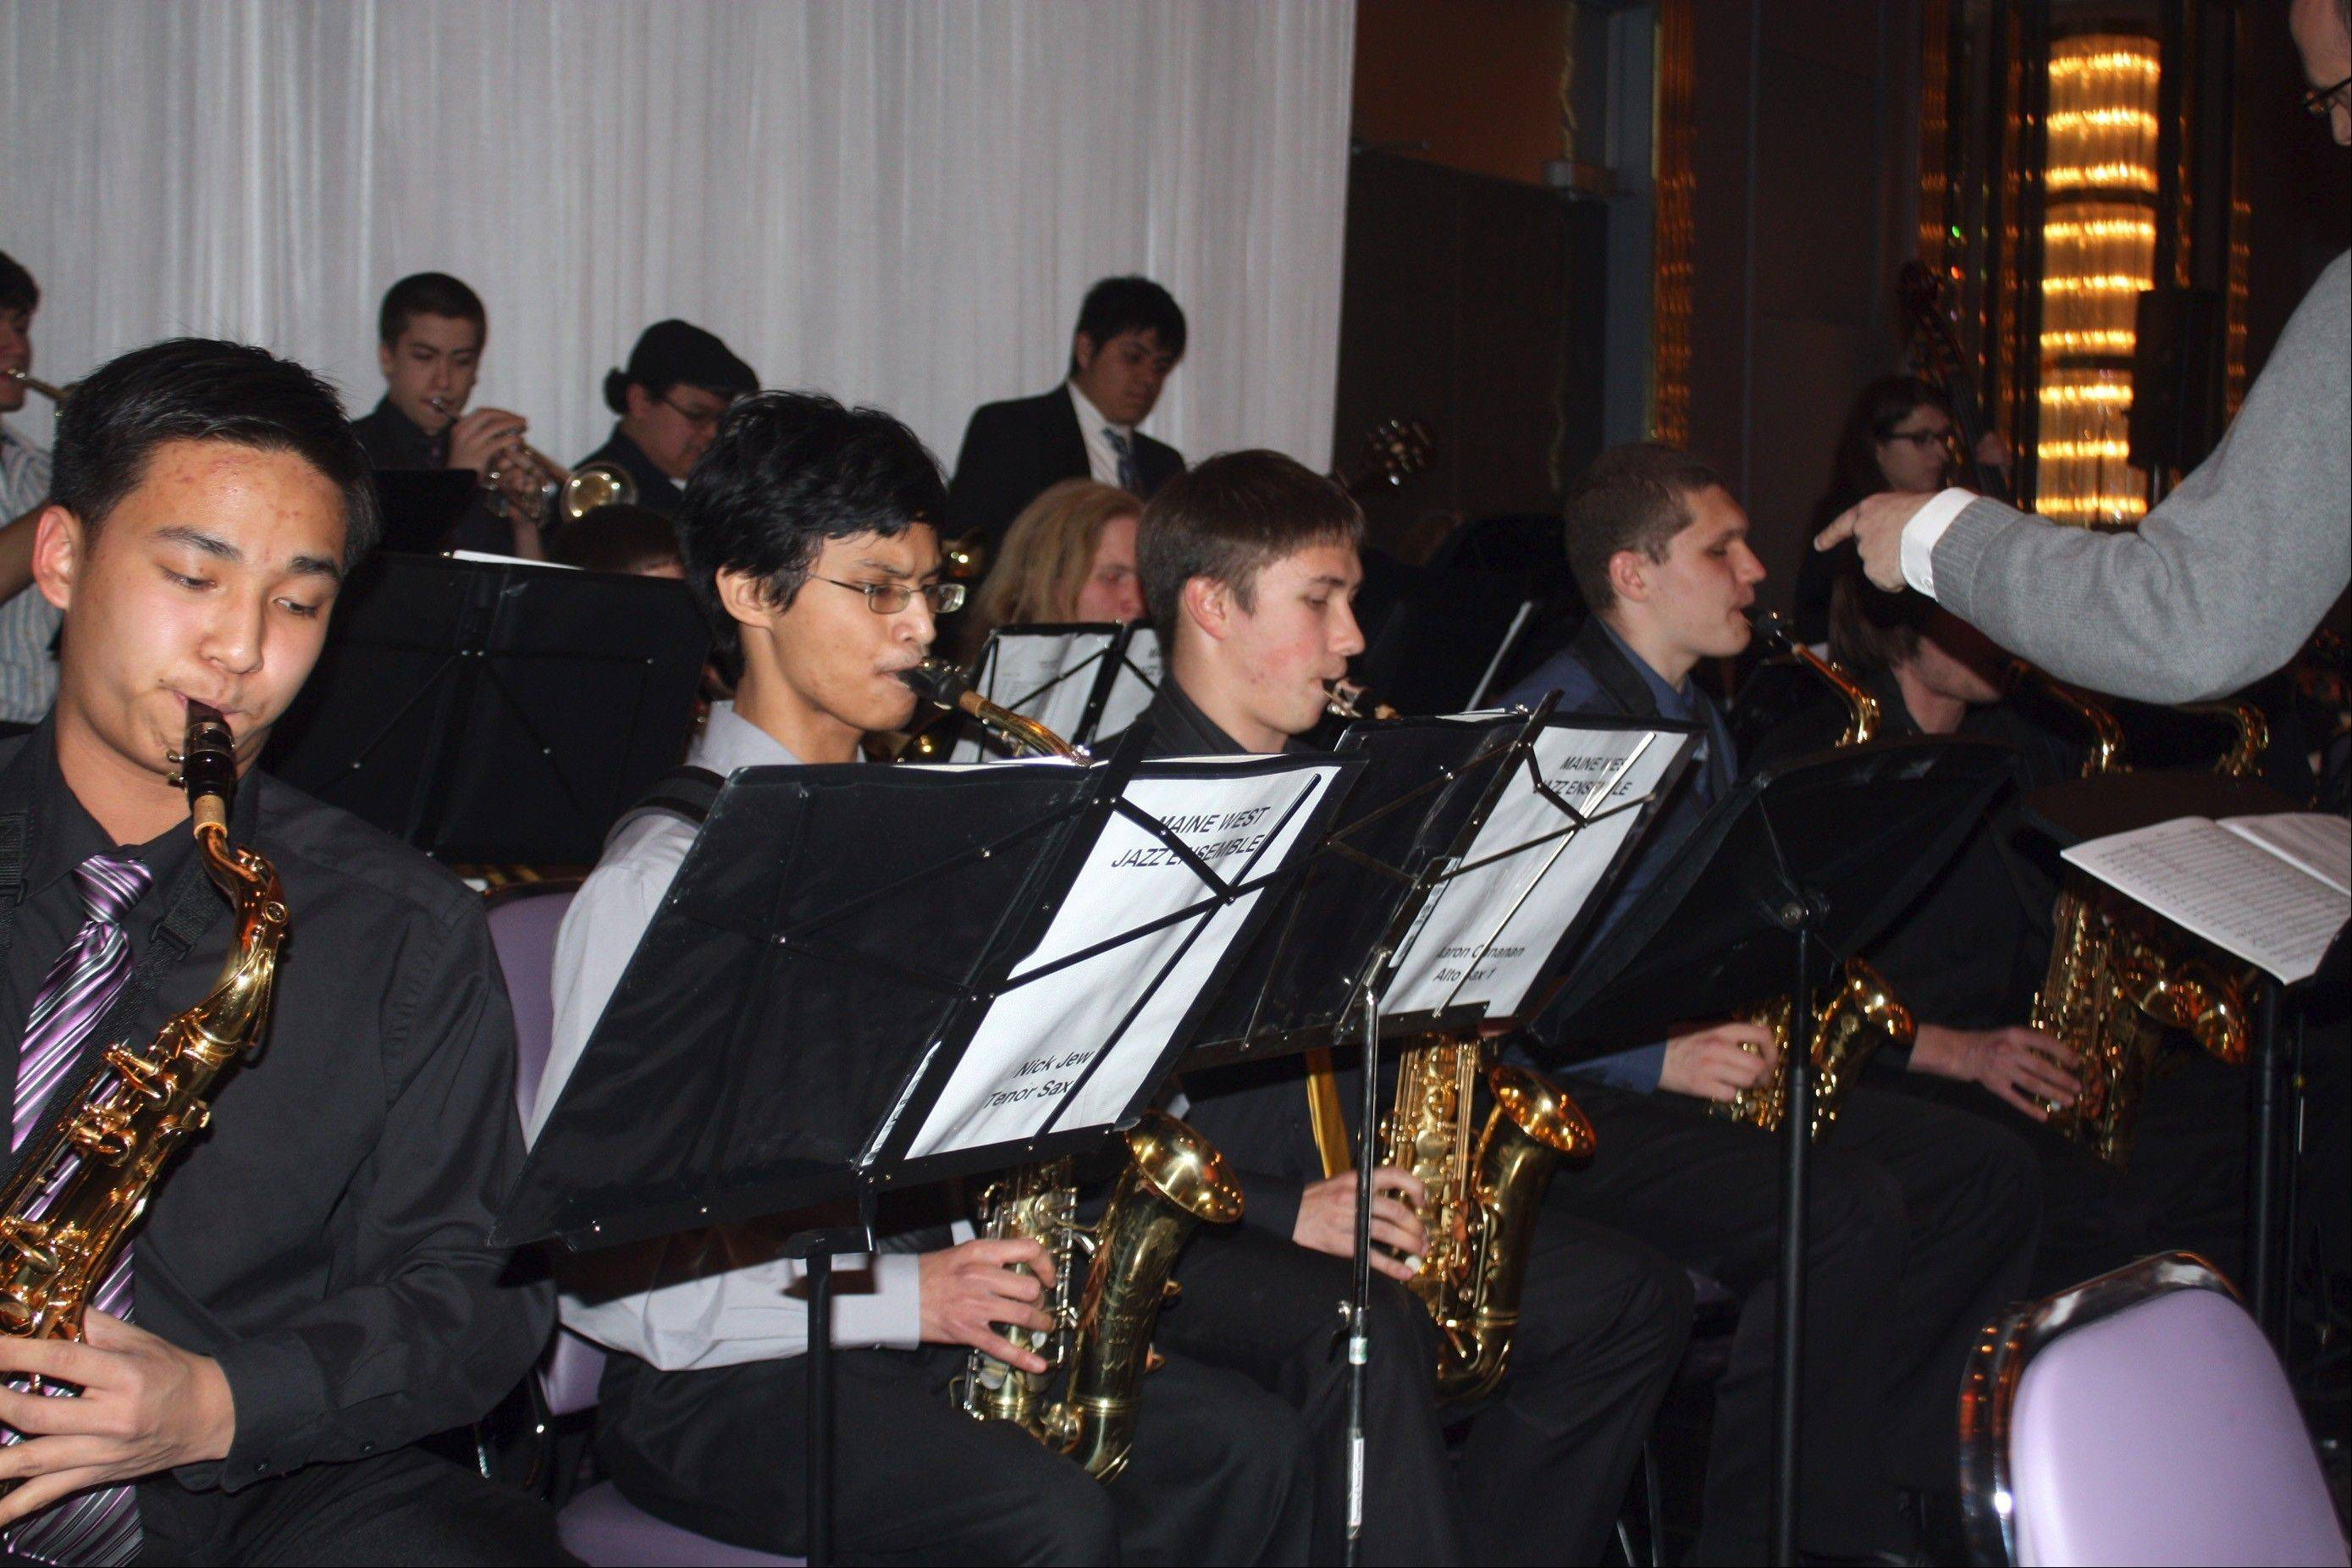 Maine West Jazz Ensemble, under the direction of Bernie Gerstmayr, performs during the recent District 207 Educational Foundation benefit dinner.